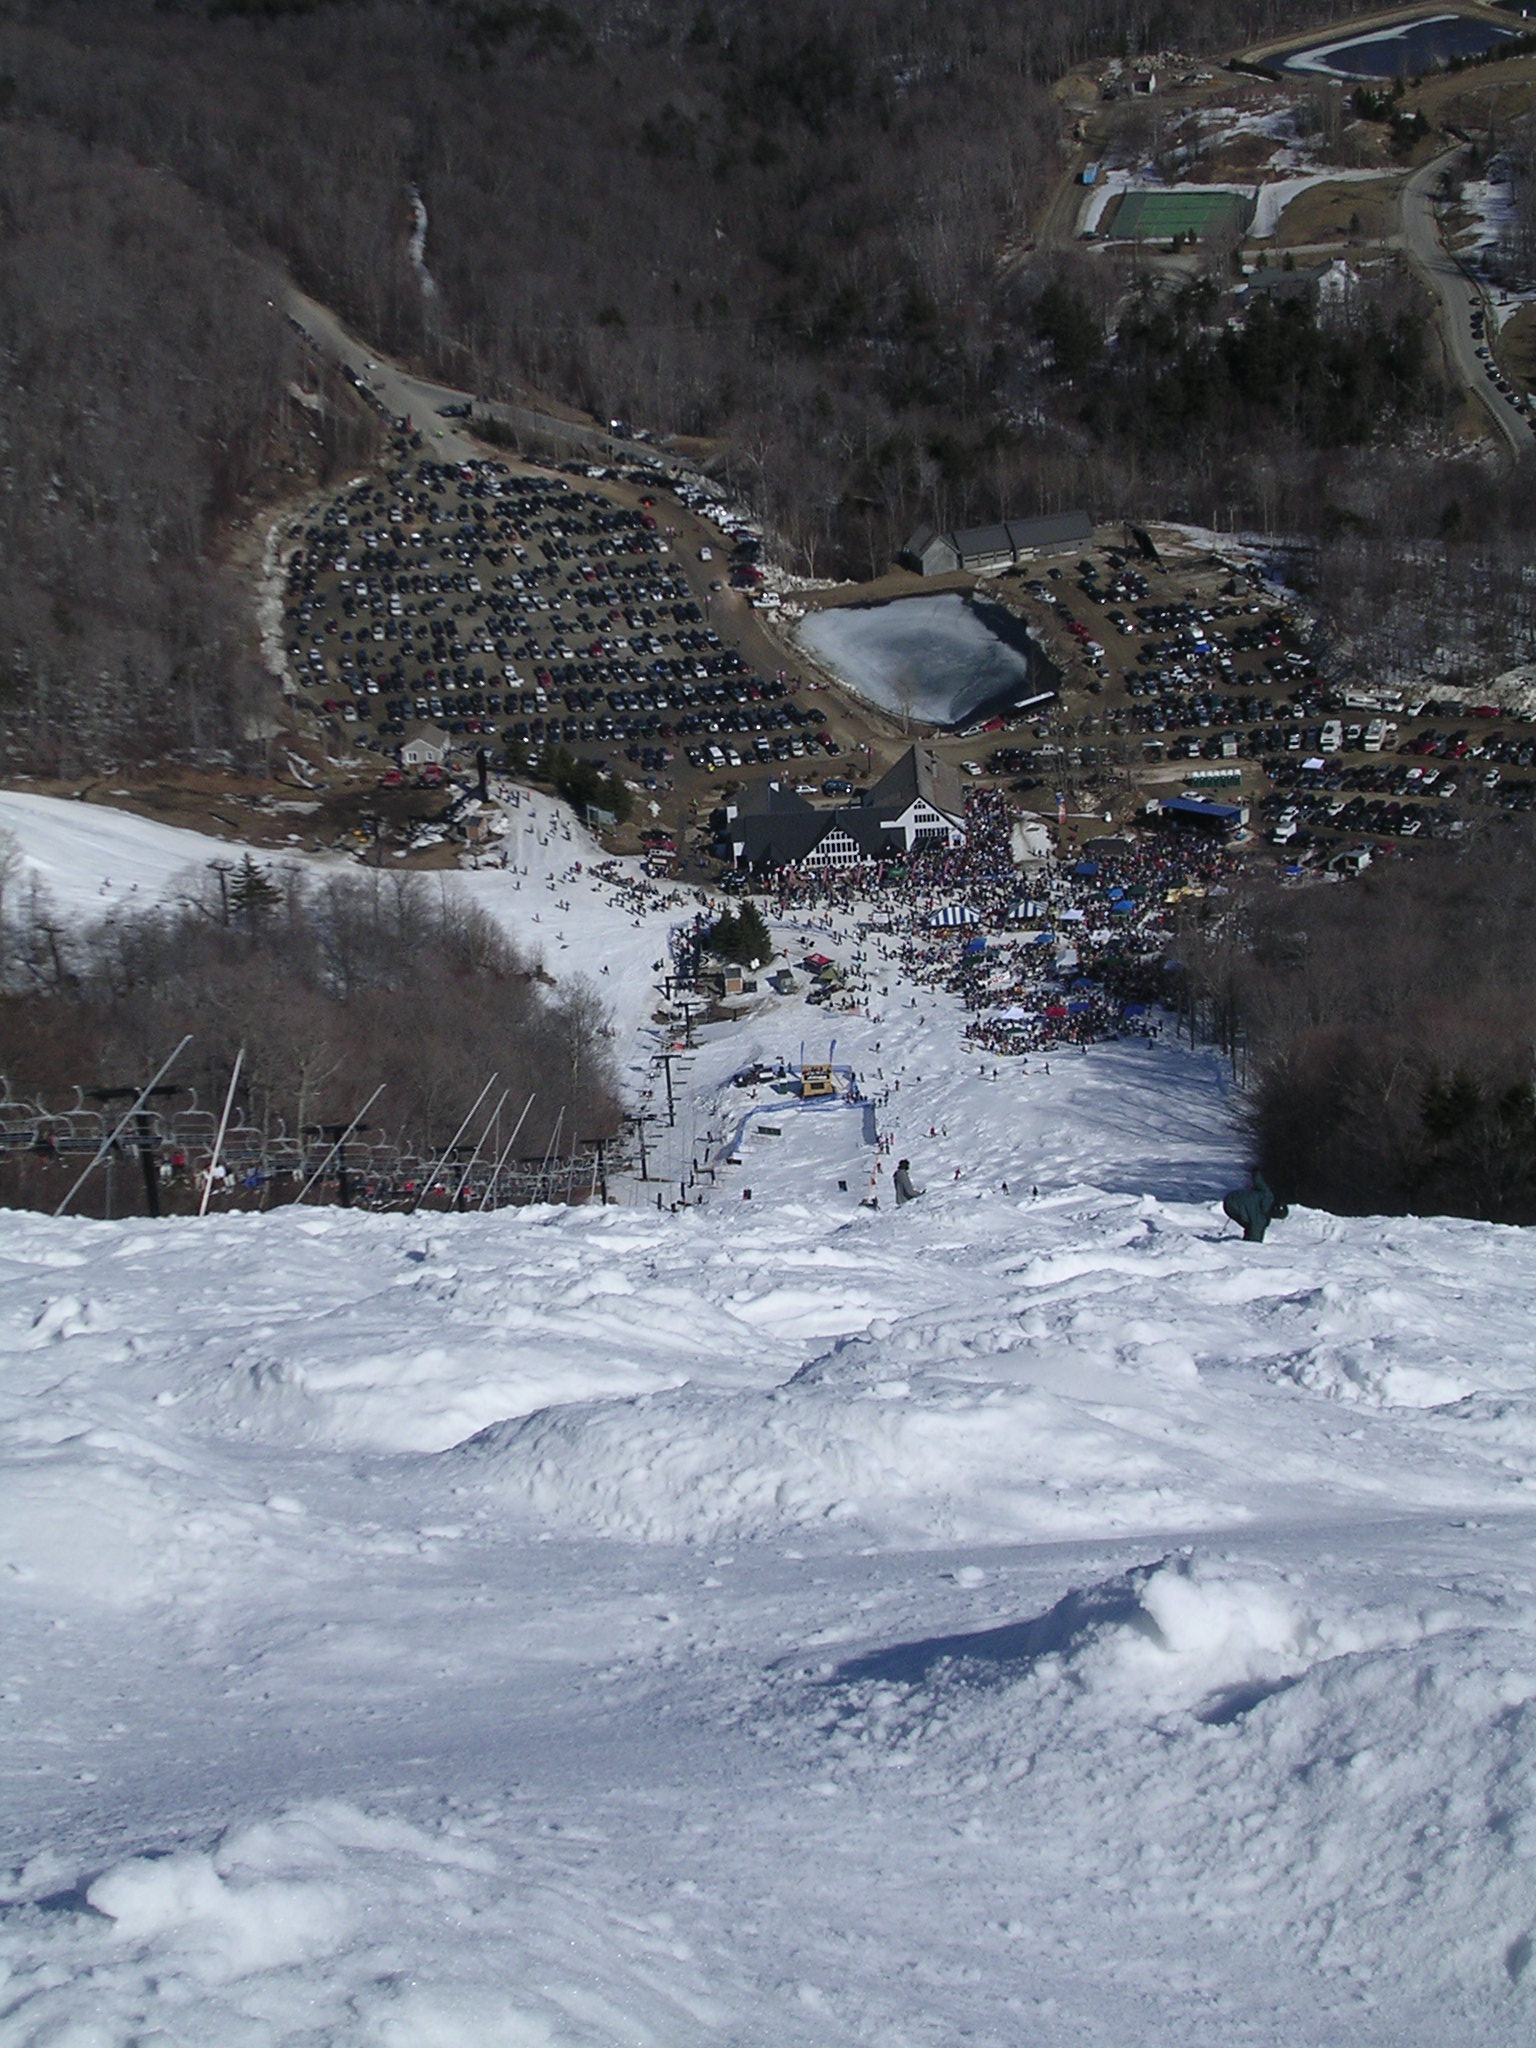 Skiing Outer Limits with Blue Oyster Cult concert at Killington